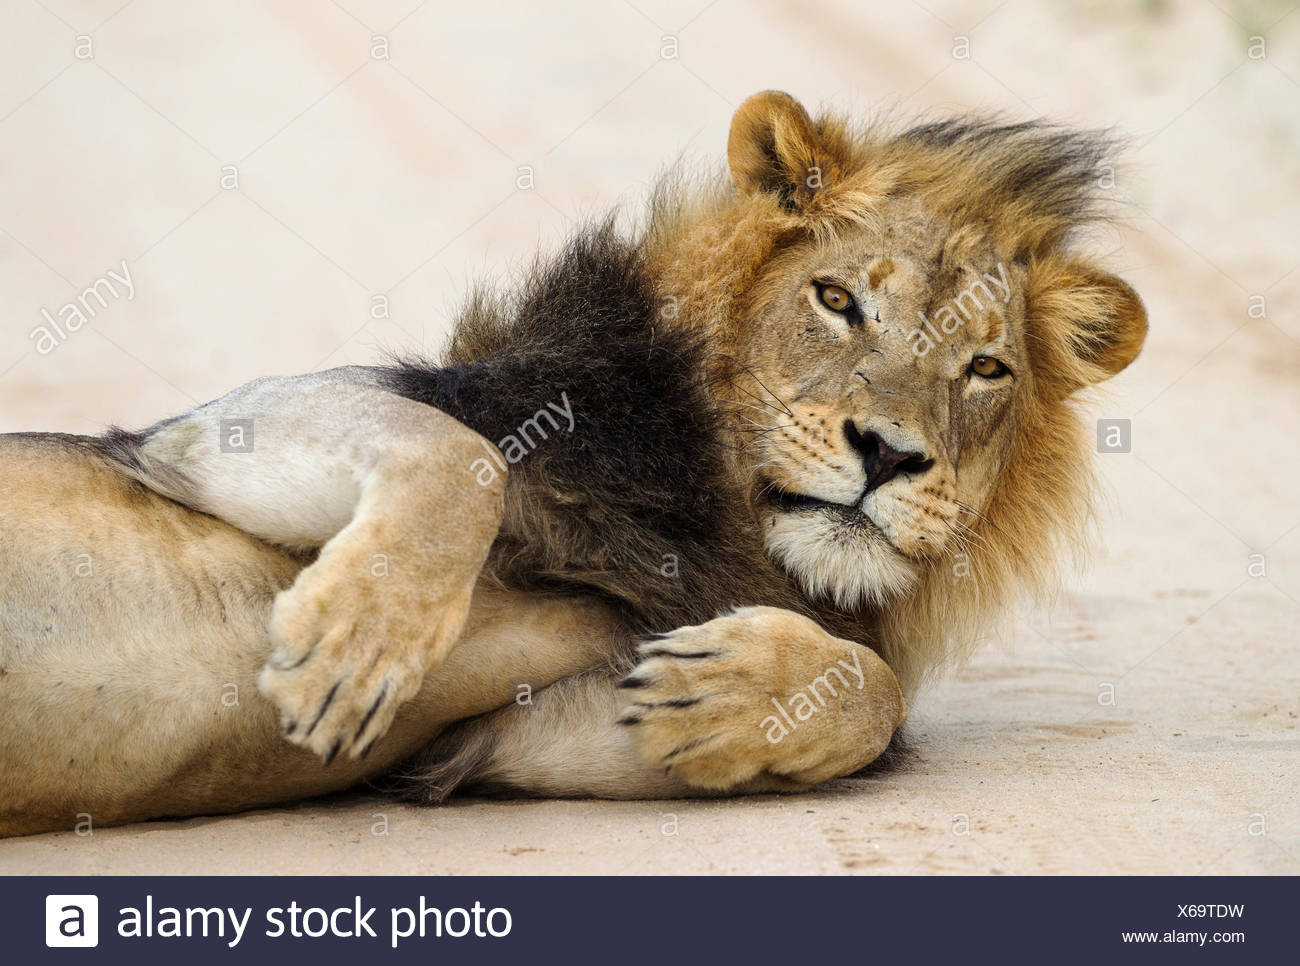 Lion (Panthera leo), black maned Kalahari Lion having been disturbed in his nap on the road - Stock Image